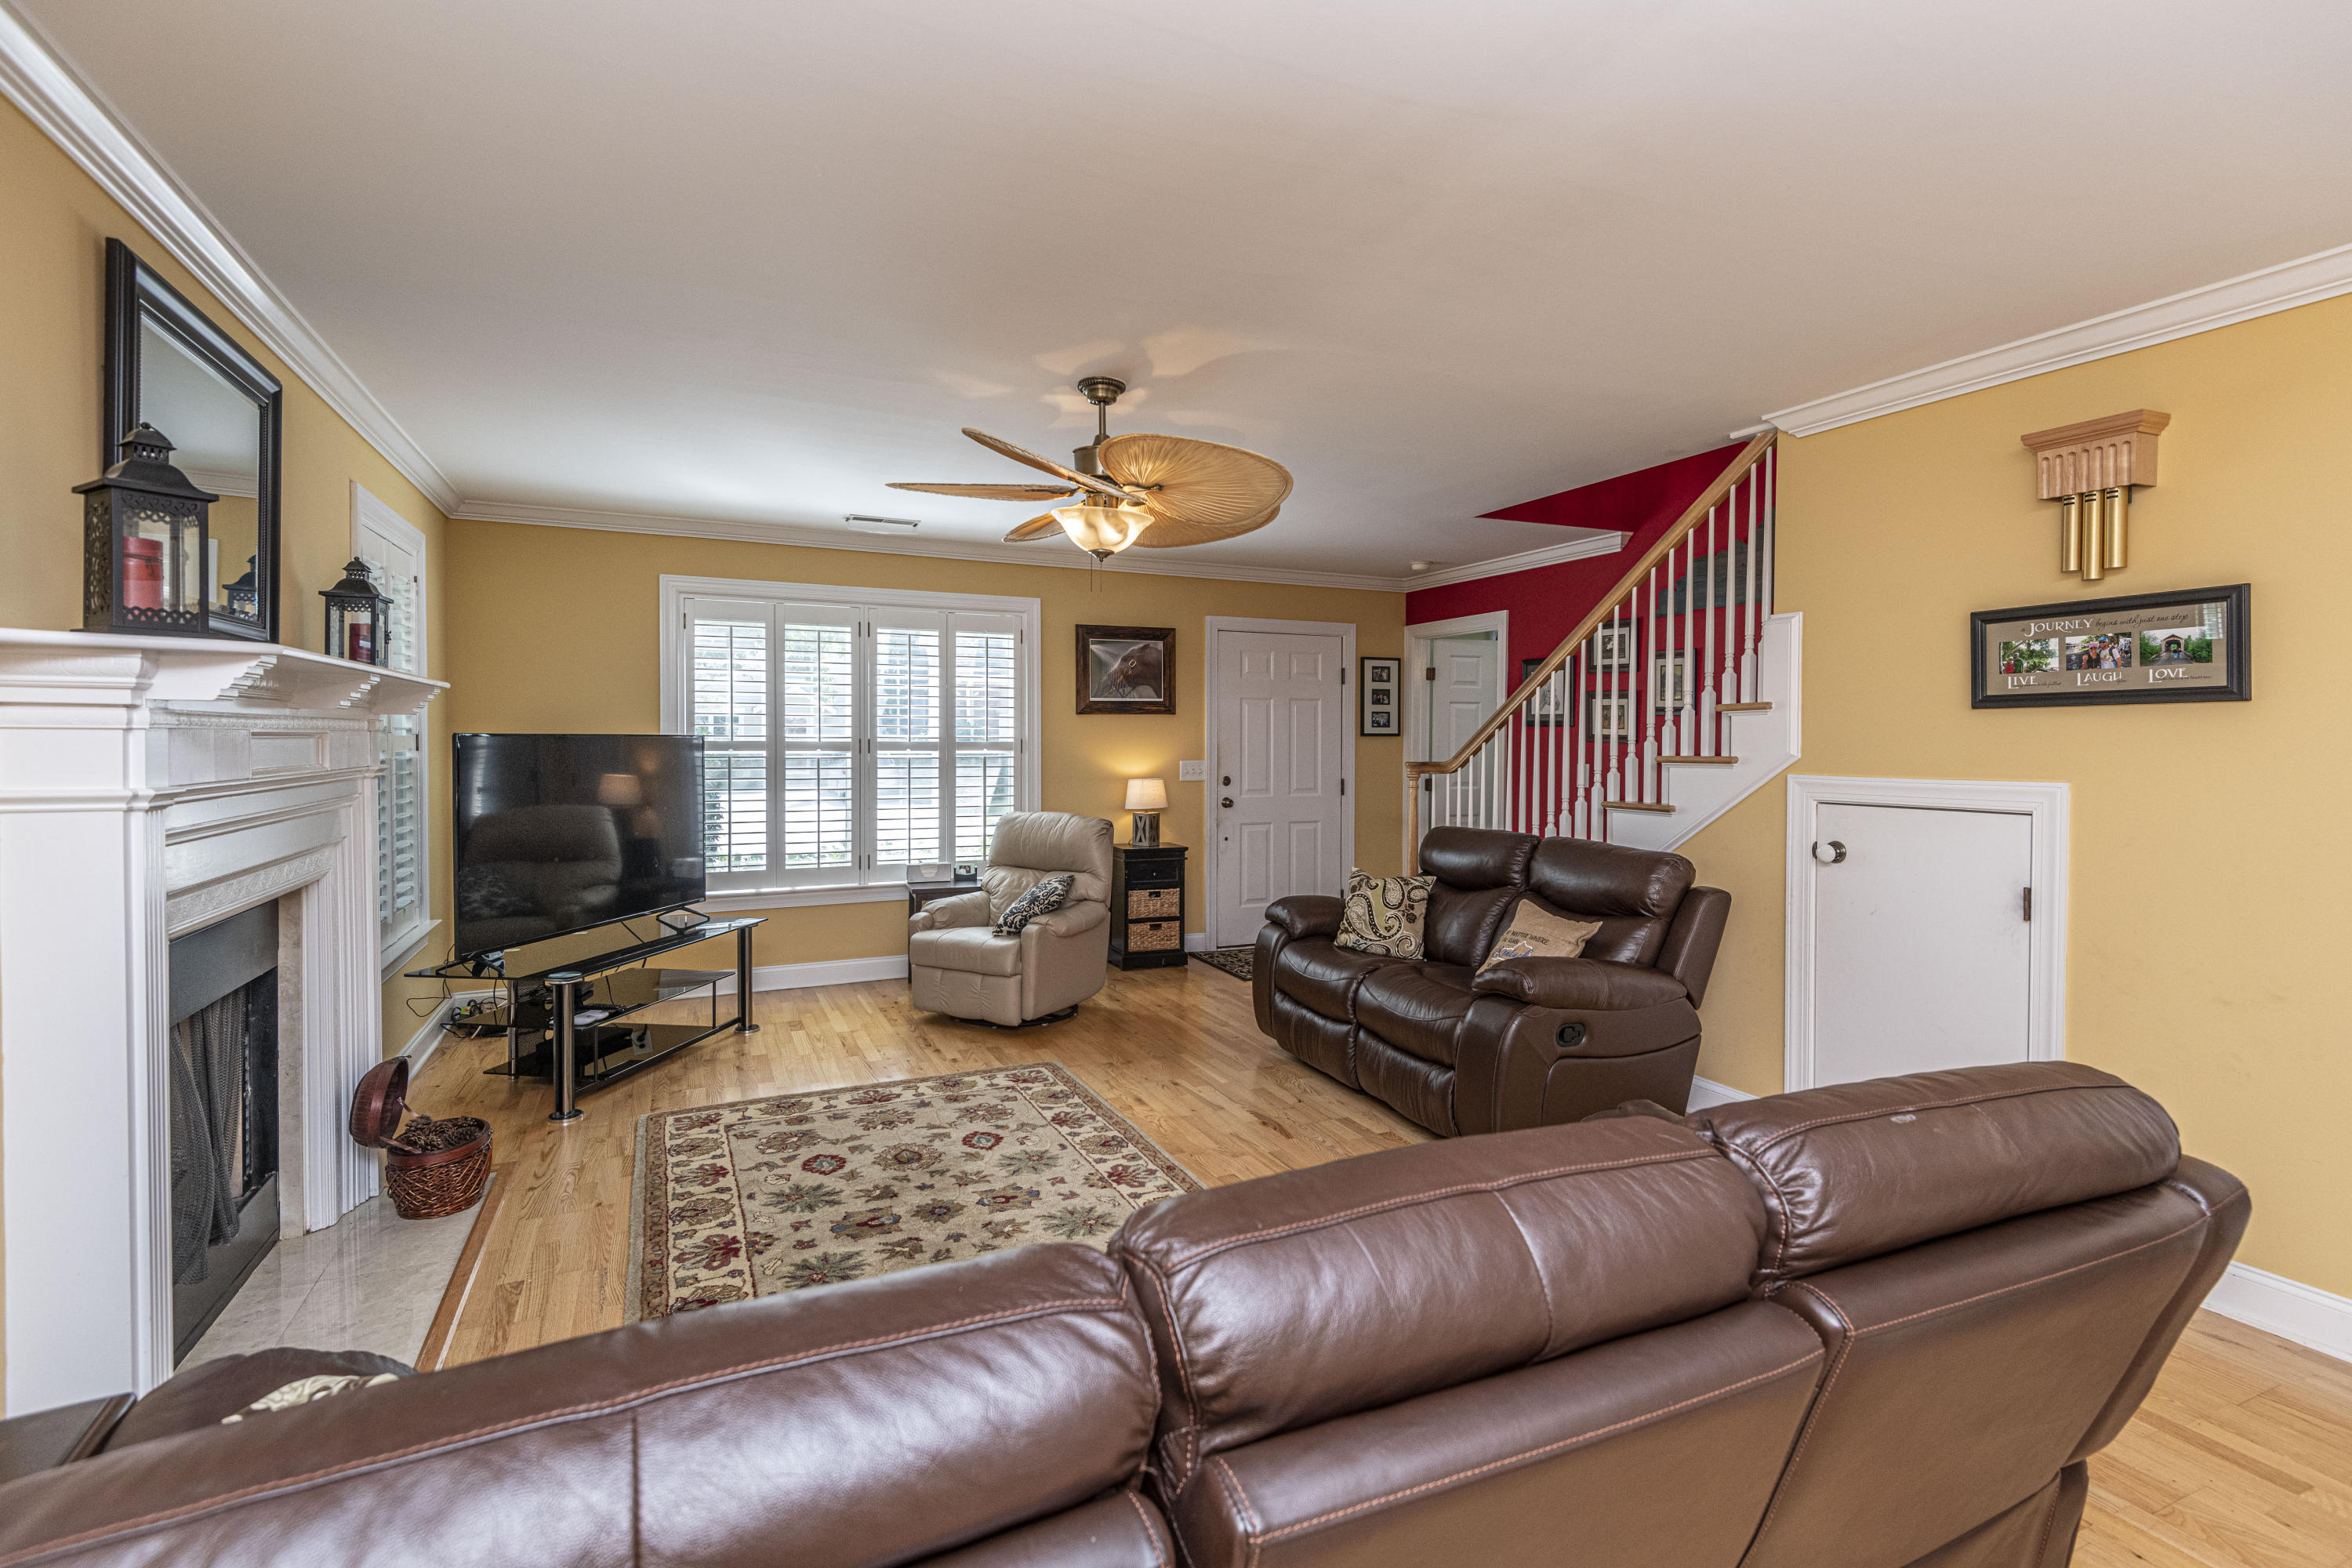 The Reserve at Wando East Homes For Sale - 1681 Lauda, Mount Pleasant, SC - 32